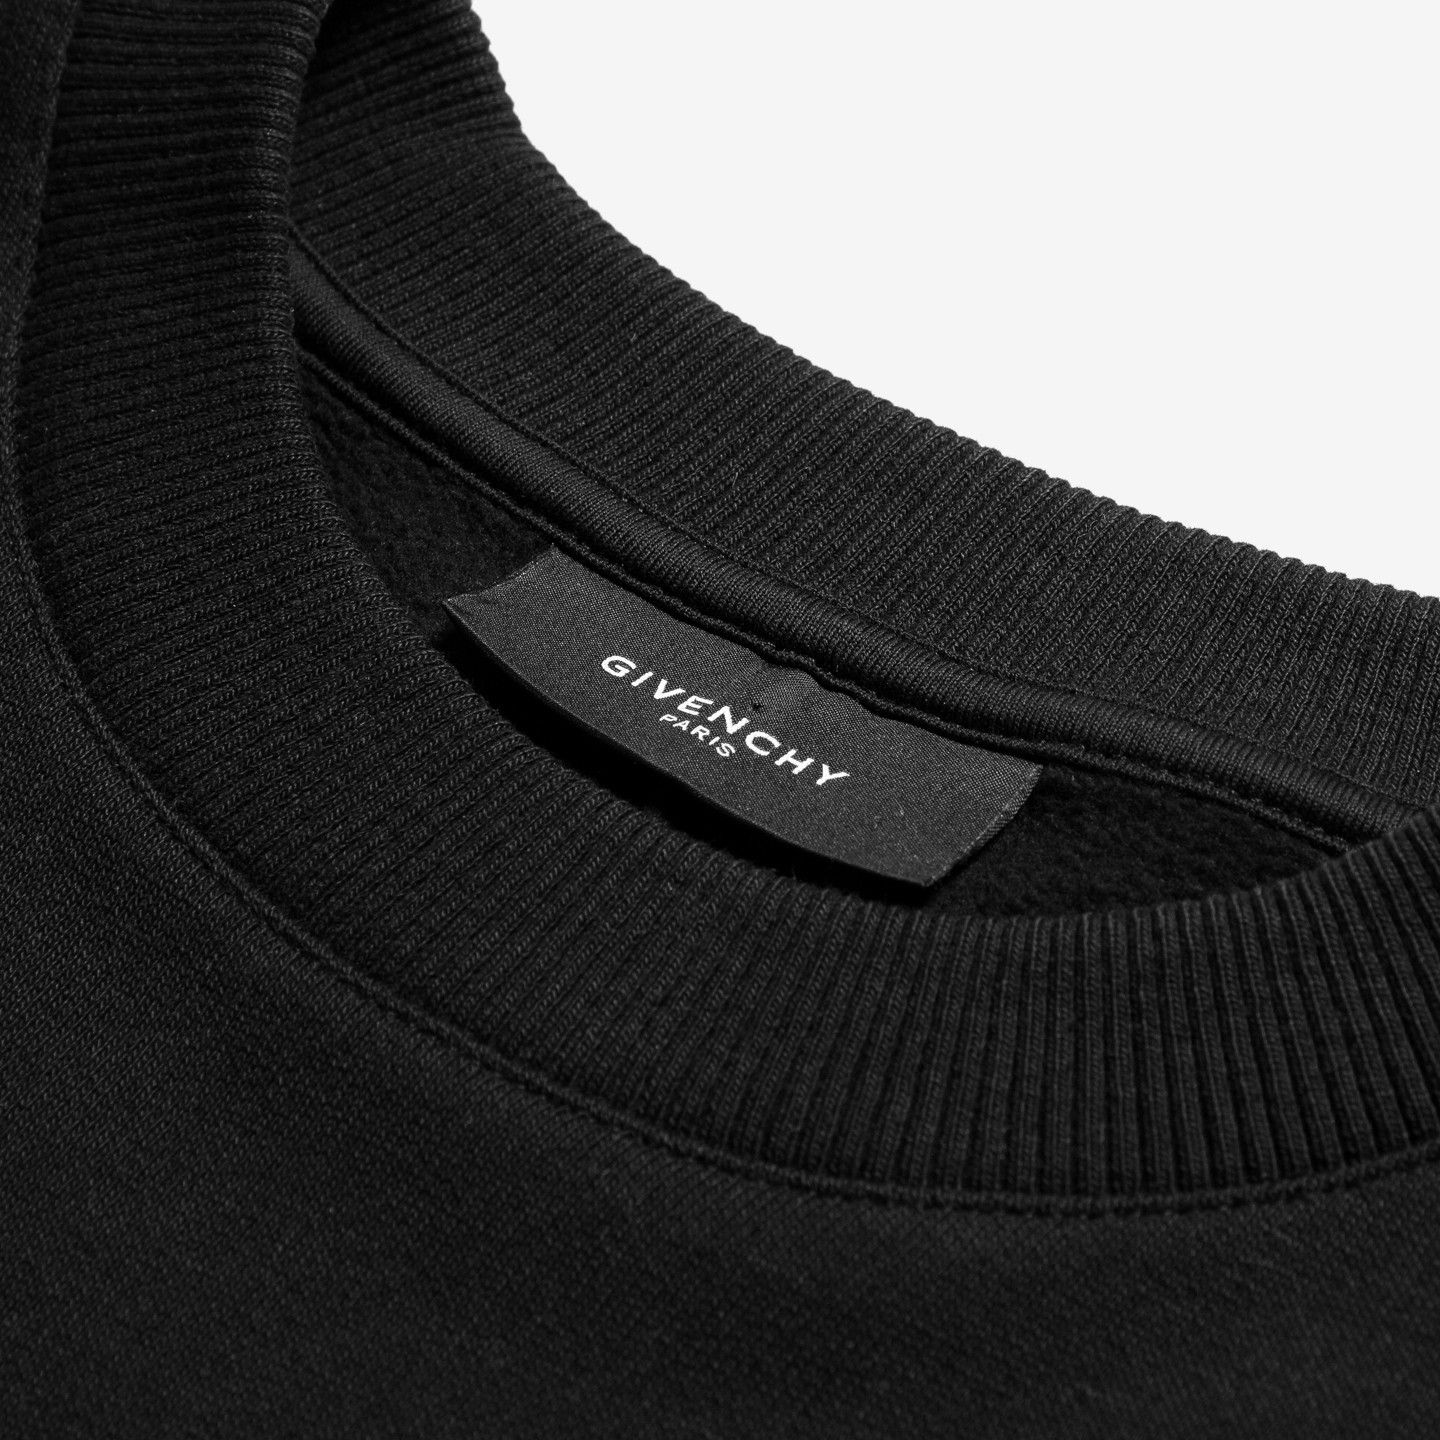 Givenchy / HDG Pullover Sweatshirt